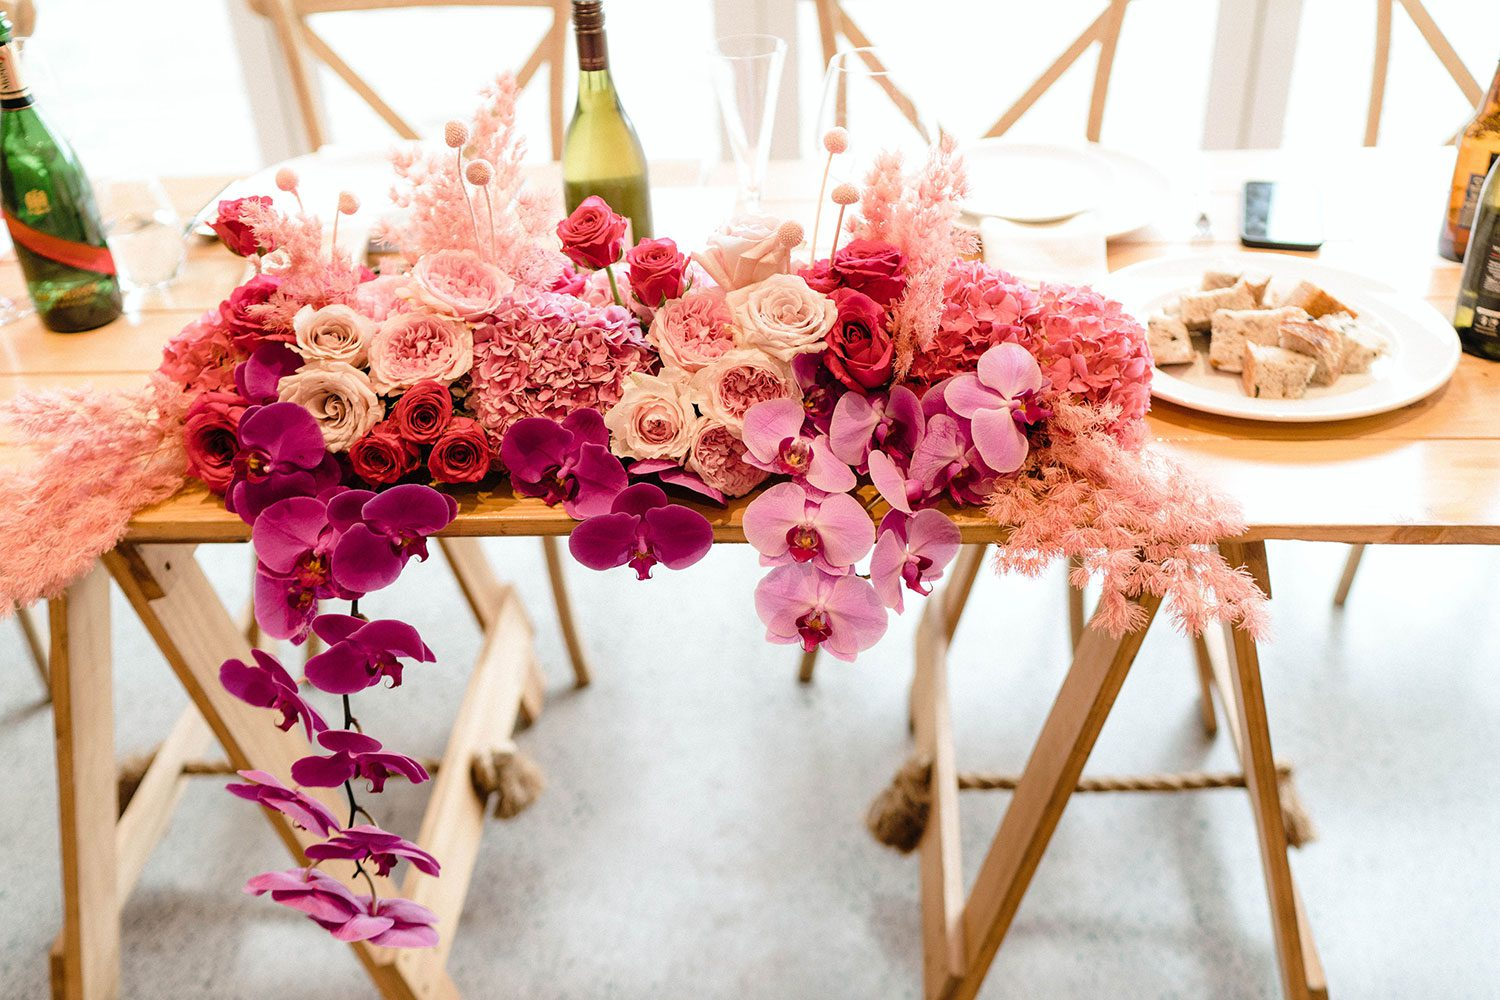 Darby and Shaun - head table flowers